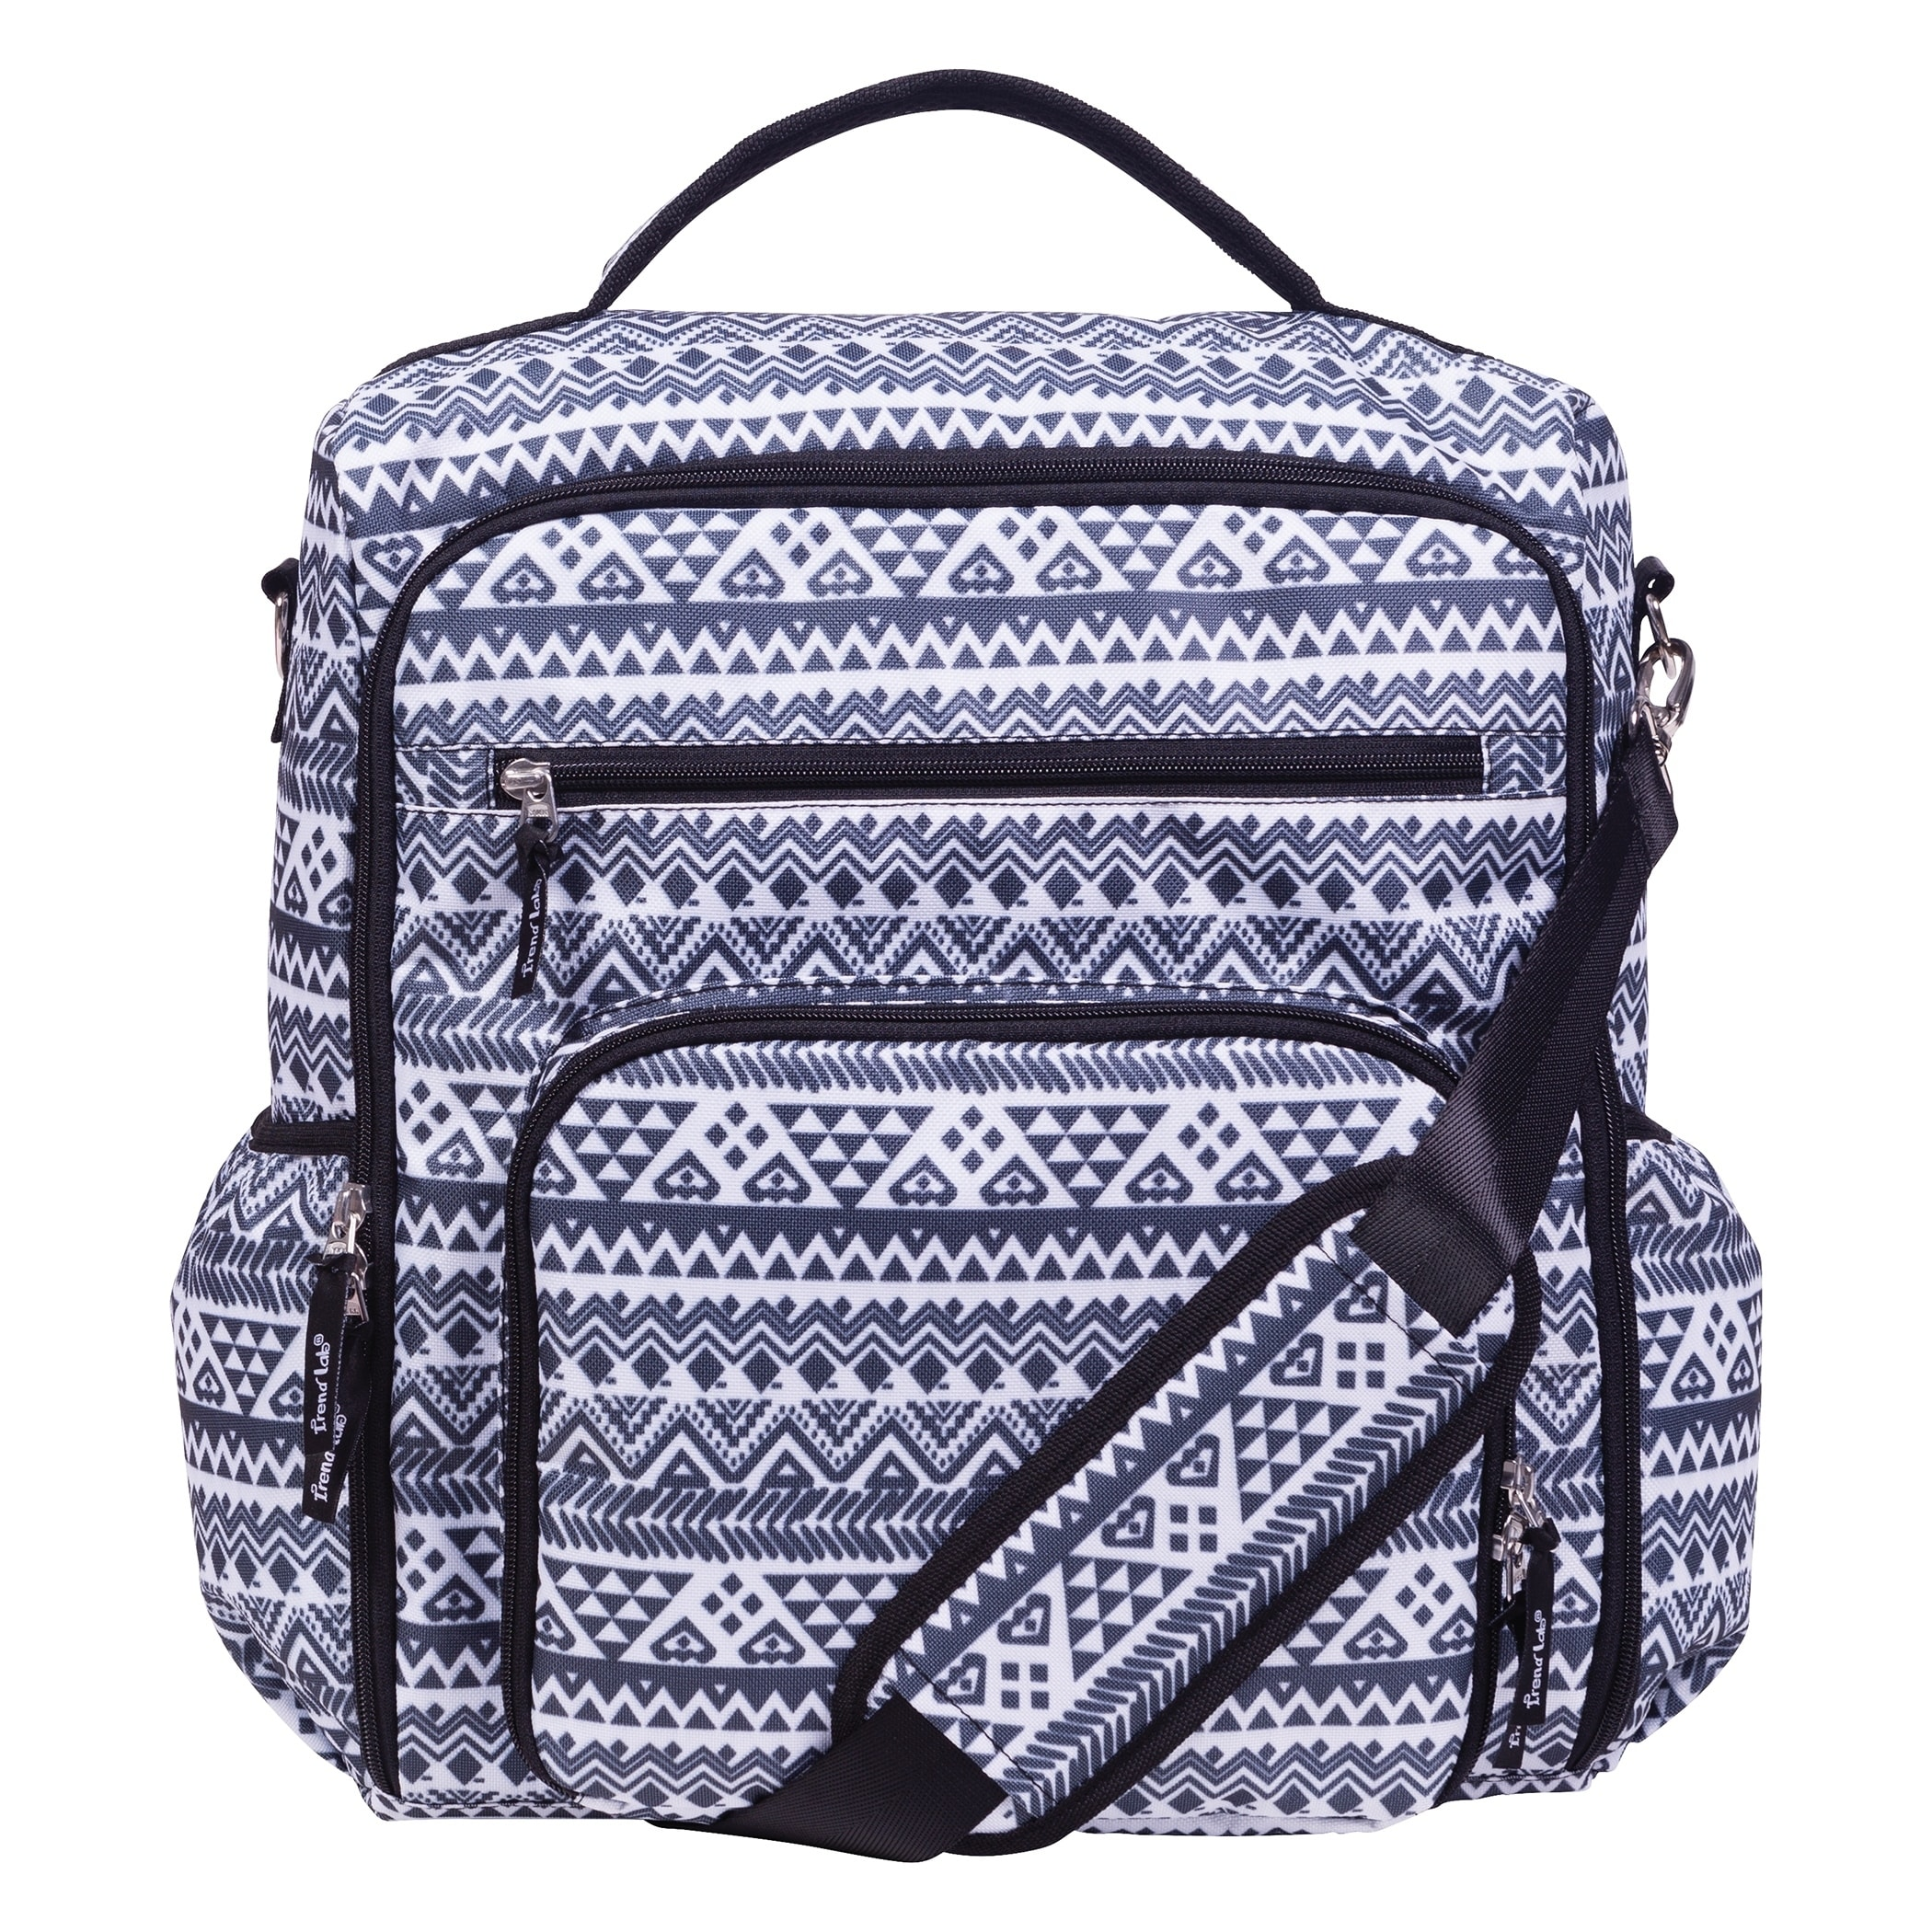 Aztec Black And White Convertible Backpack Diaper Bag Free Shipping Today 22874370